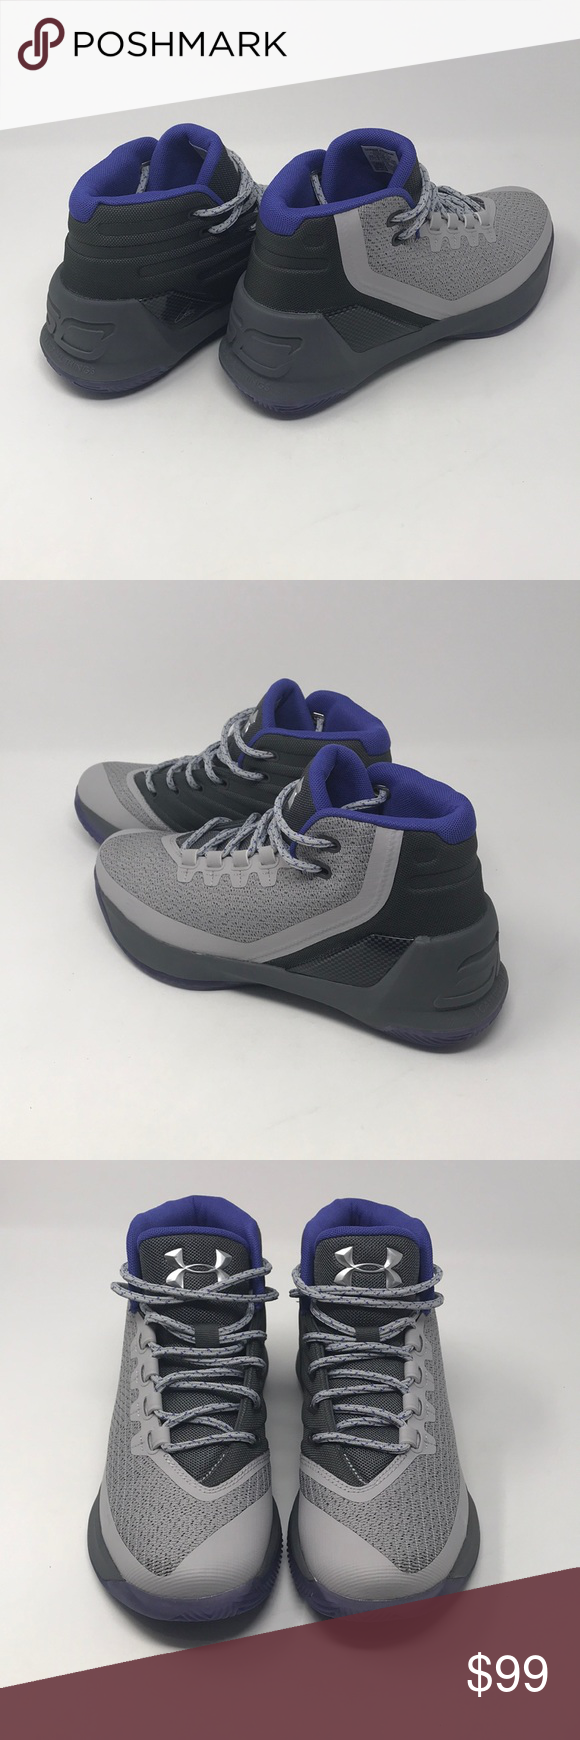 6250b0f459b Under Armour Steph Curry 3 Kids Boys Youth 6.5Y Under Armour Steph Curry 3  Kids Boys Youth Size 6.5Y Brand New without box Guaranteed Authentic Any ...